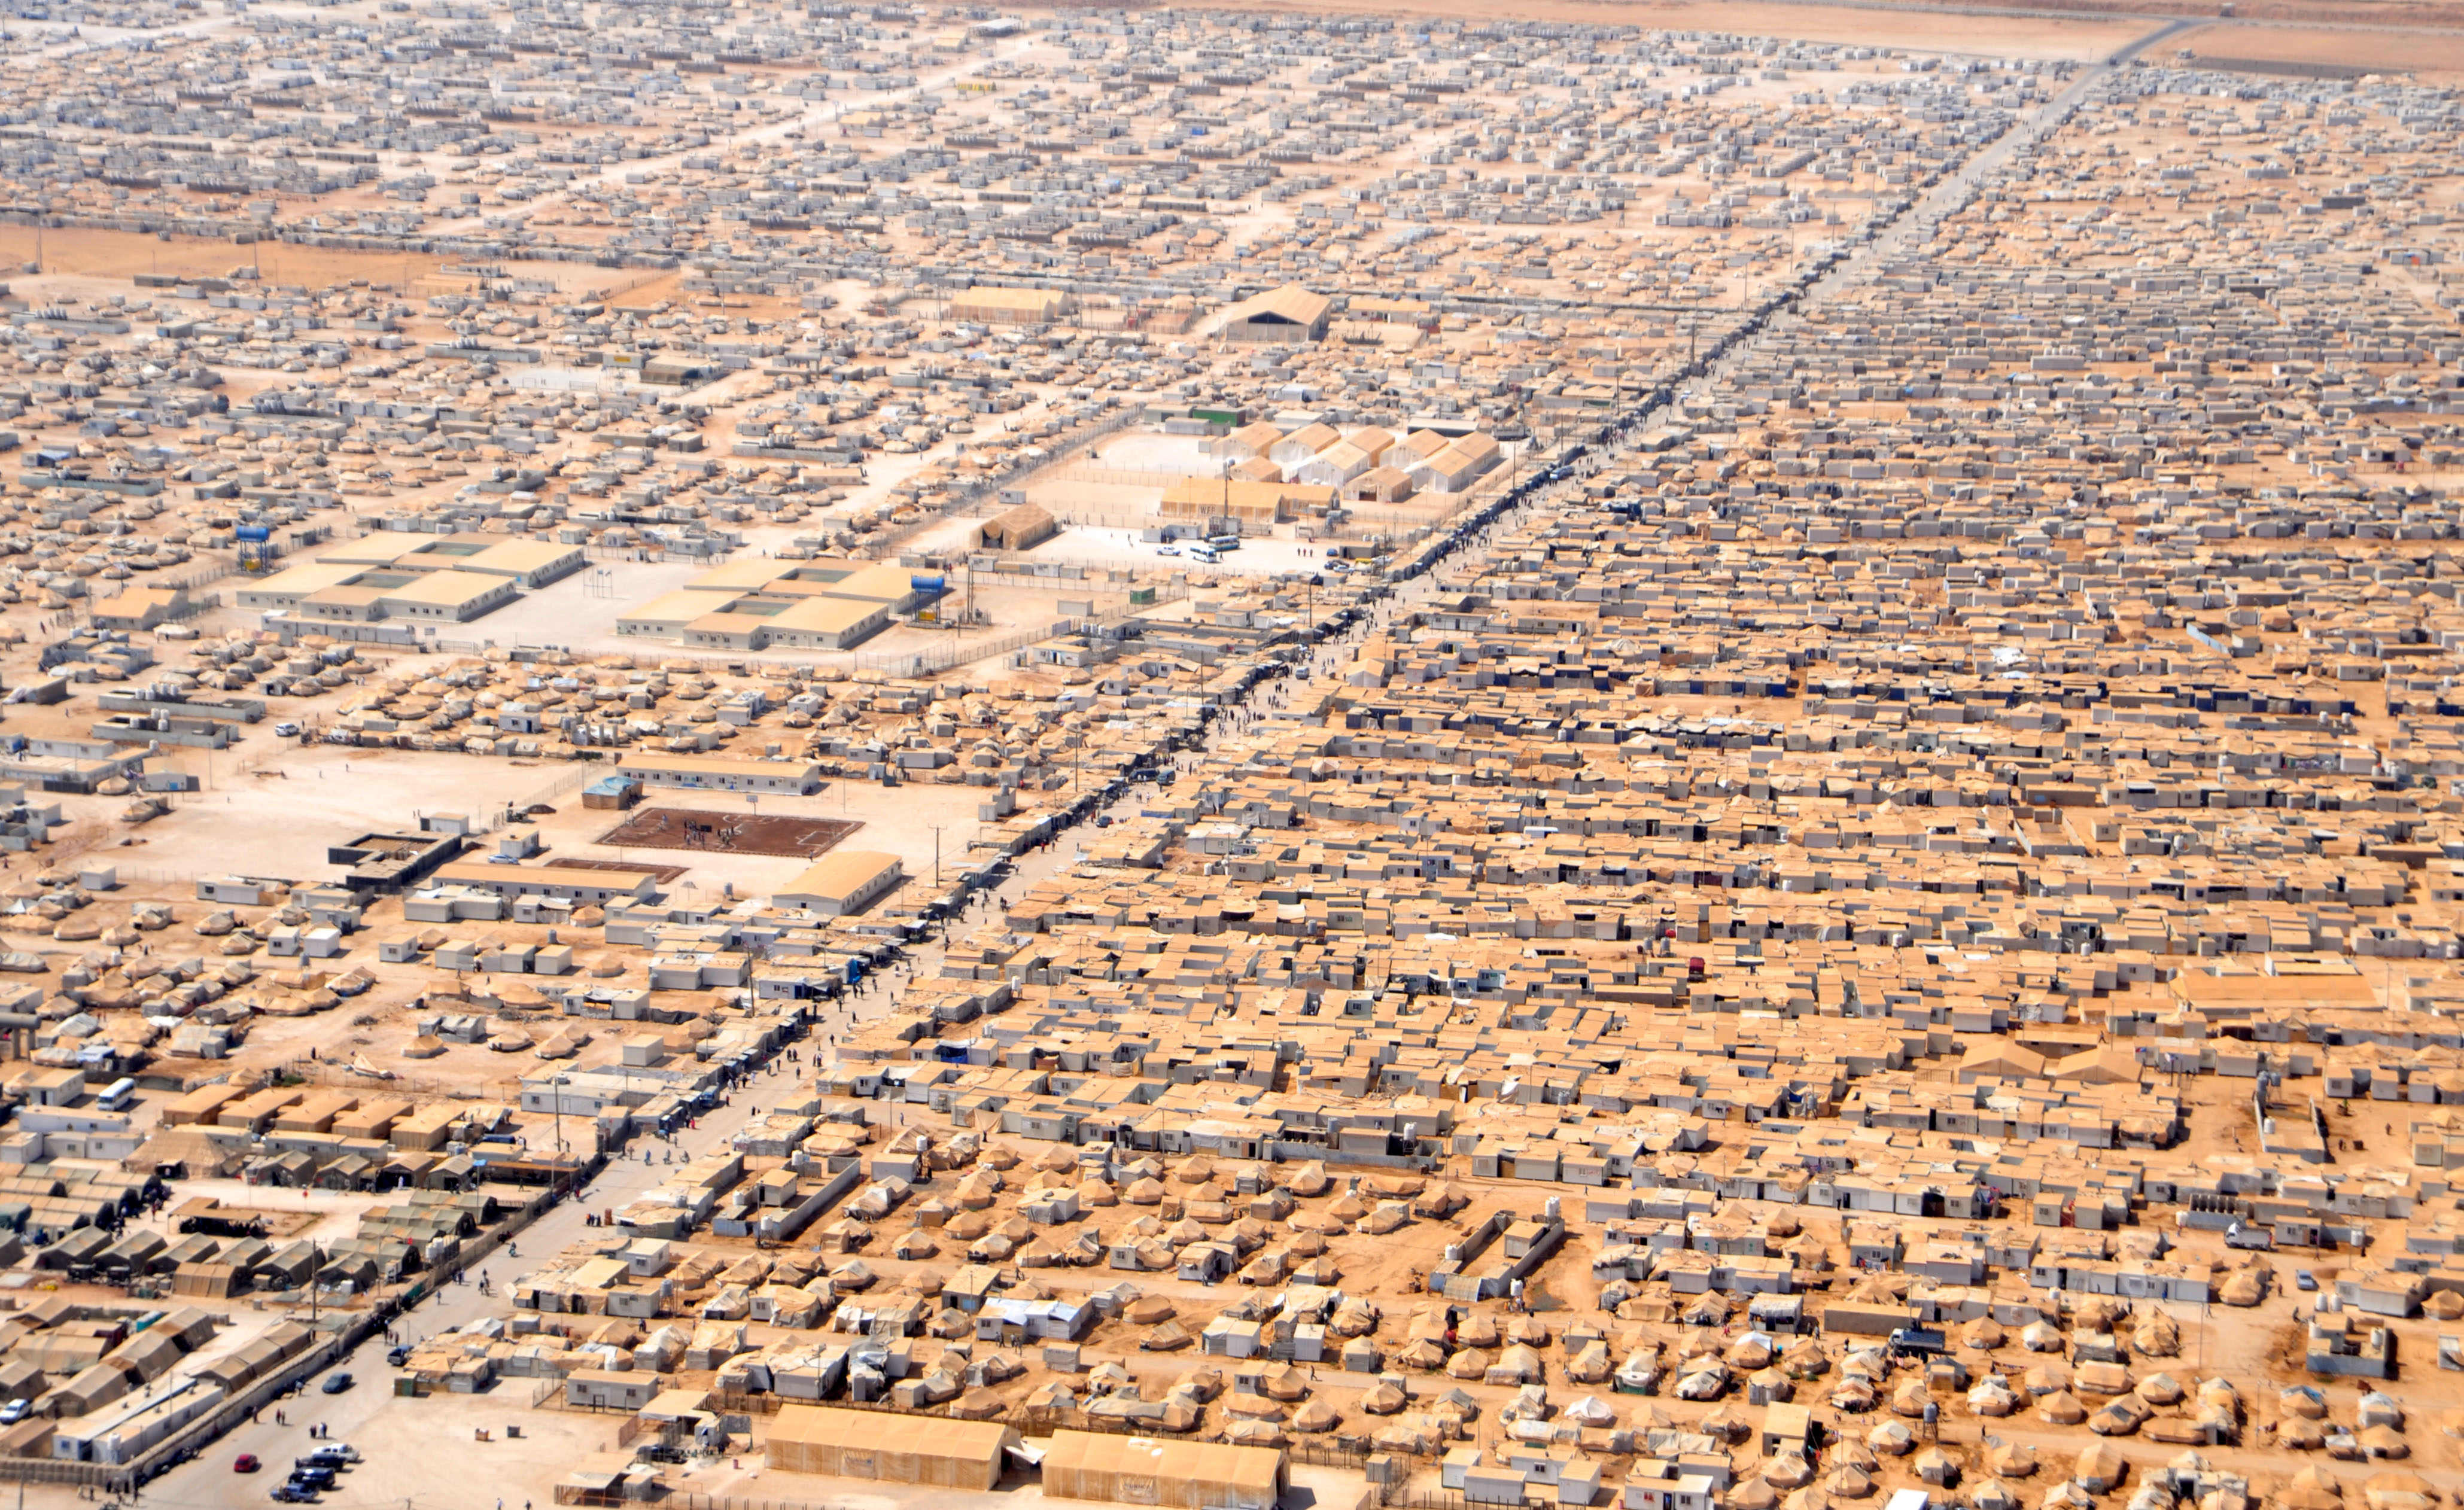 Syrian refugee camps - Wikipedia